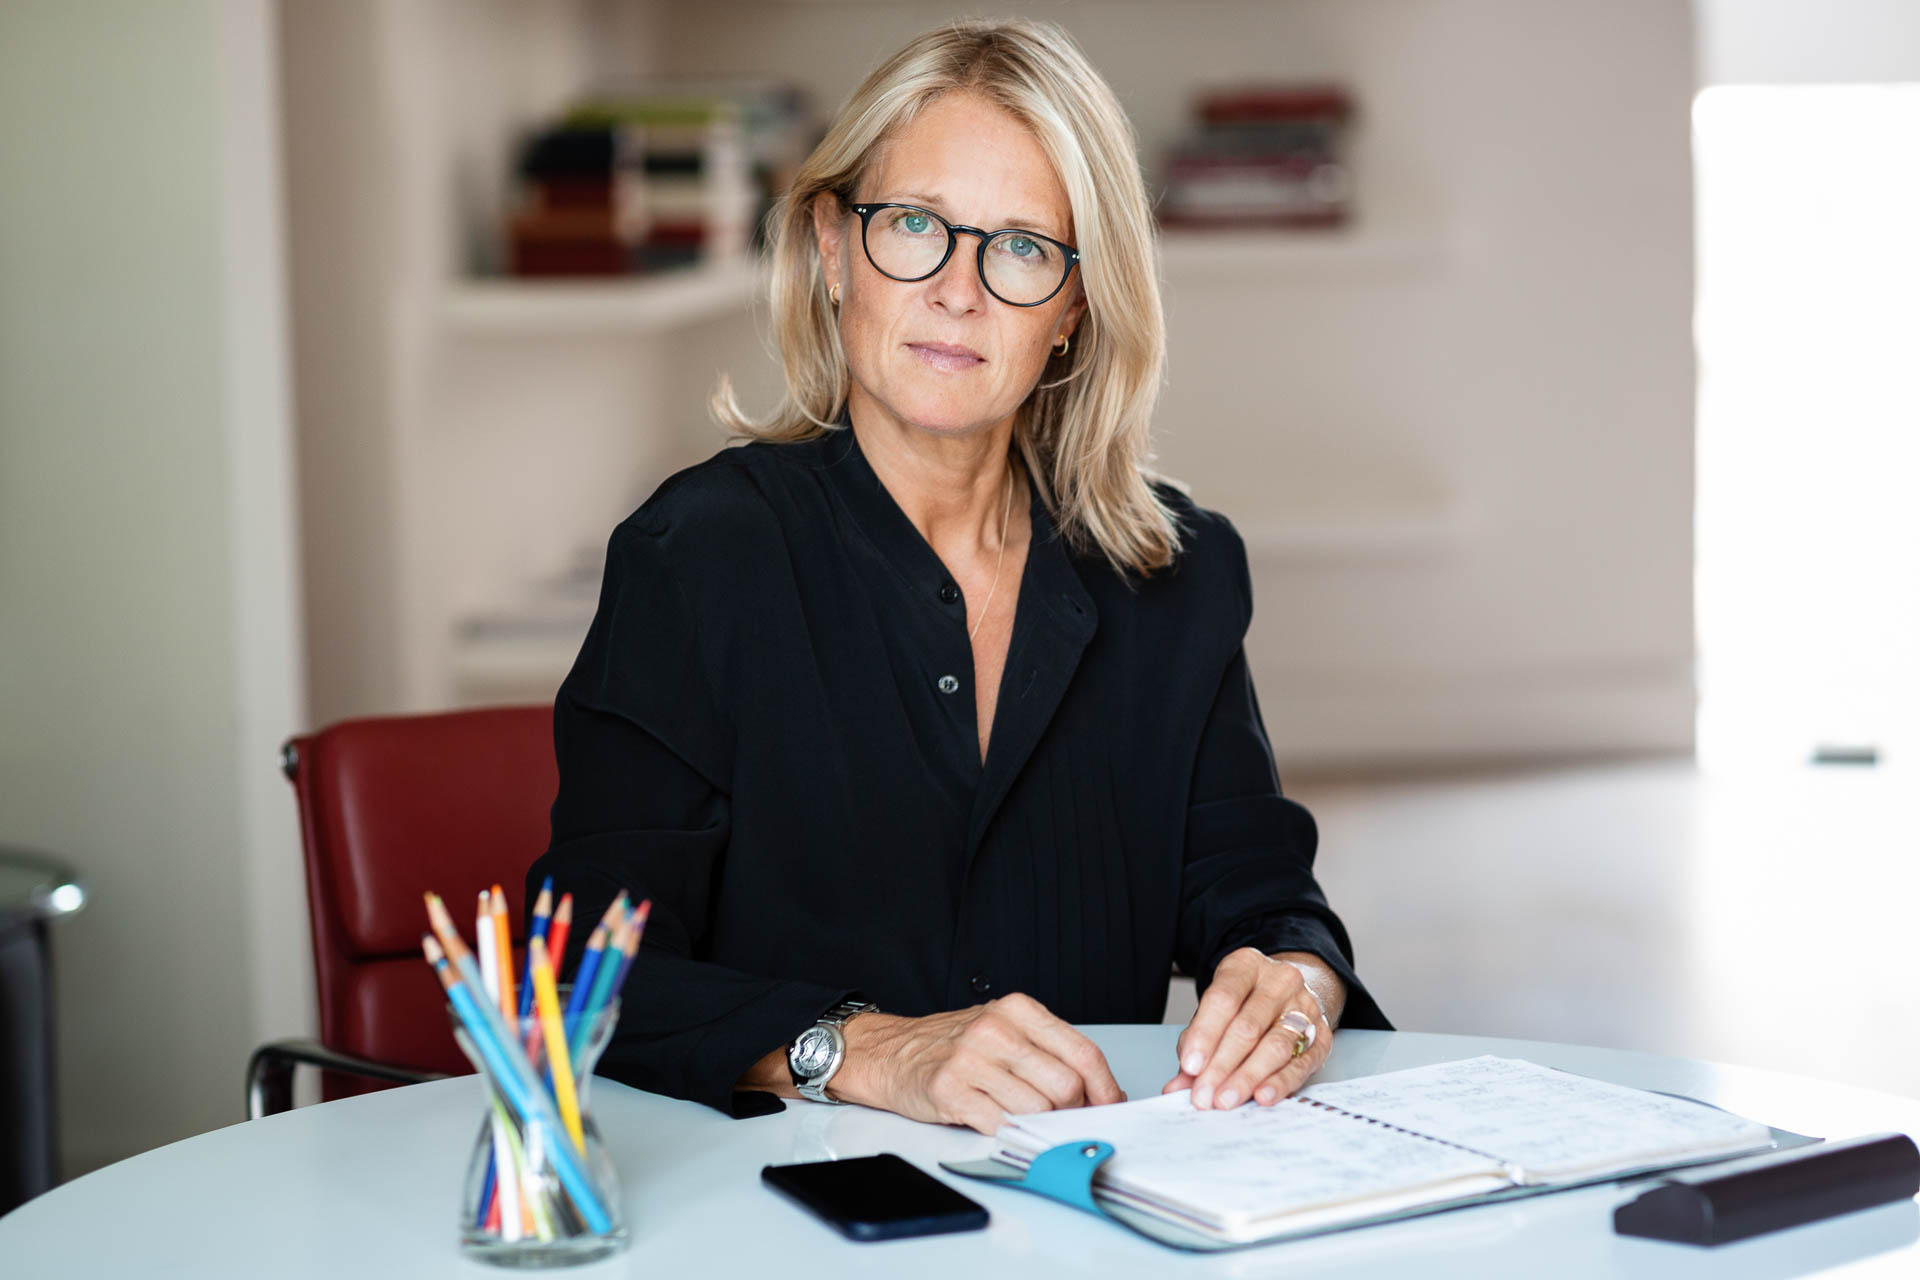 Blonde businesswoman sitting at desk with coloured pencils